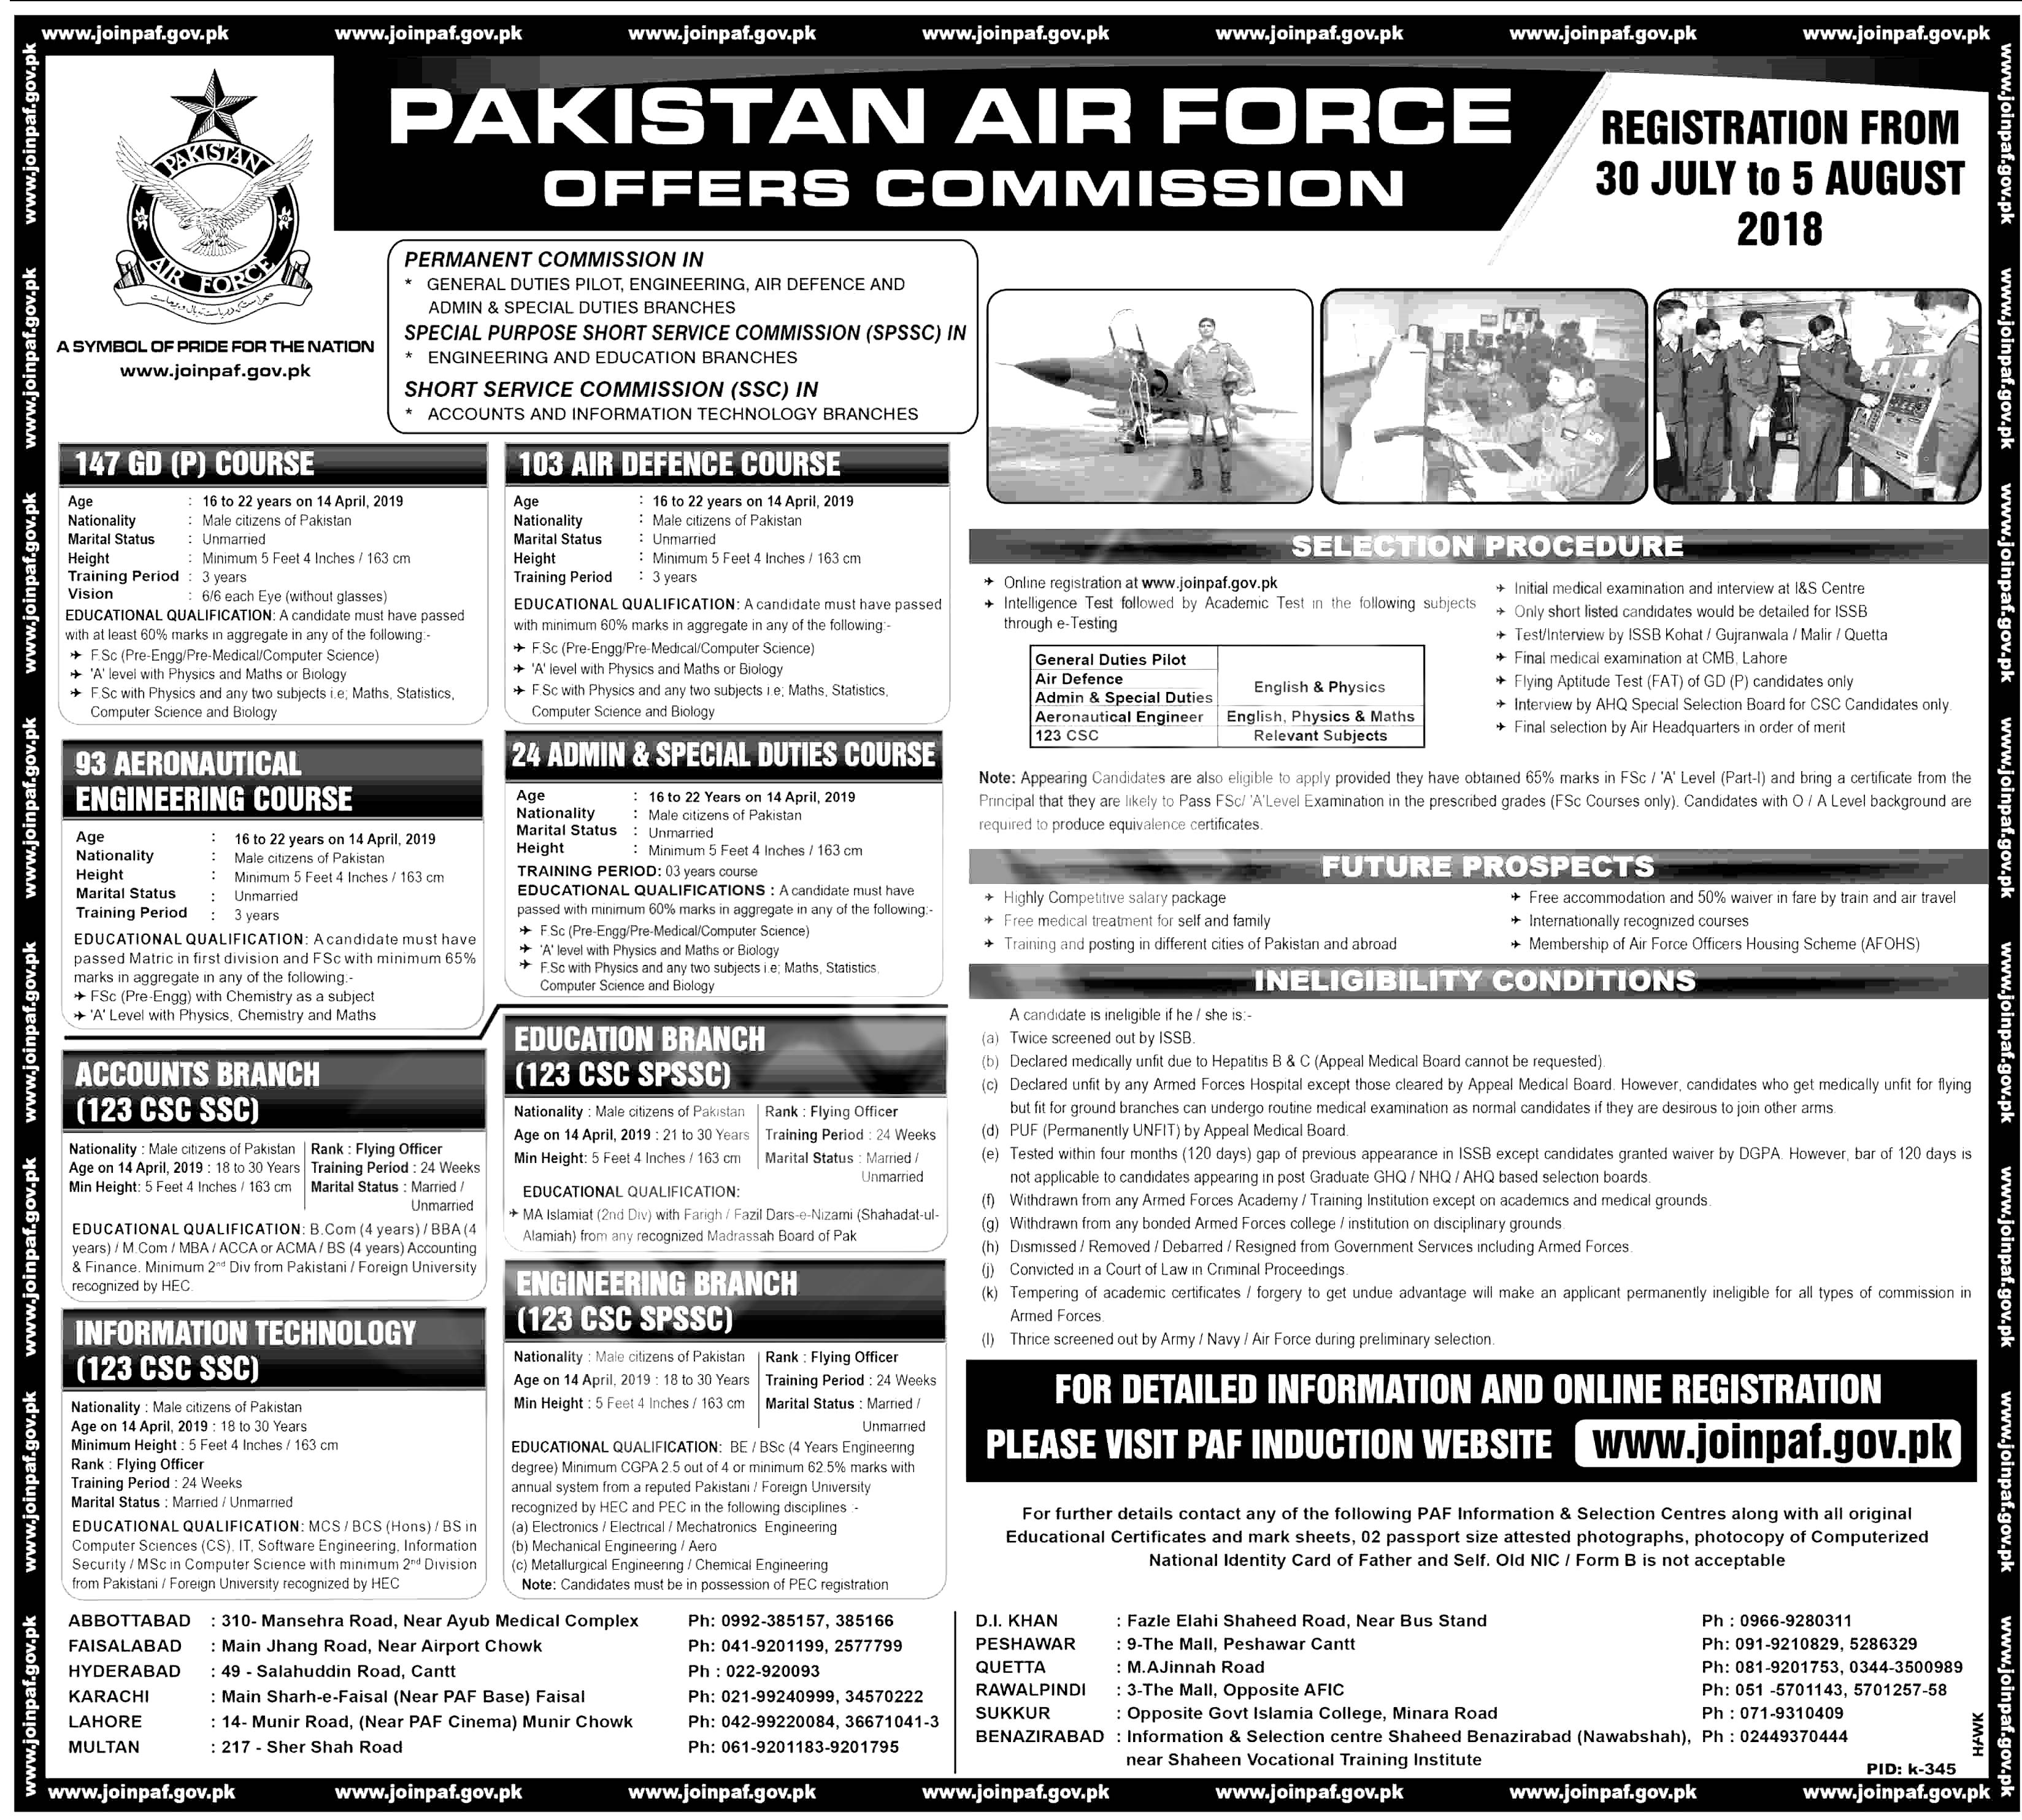 Join PAF As GD Pilot 2018 Registration apply online for Commission officer